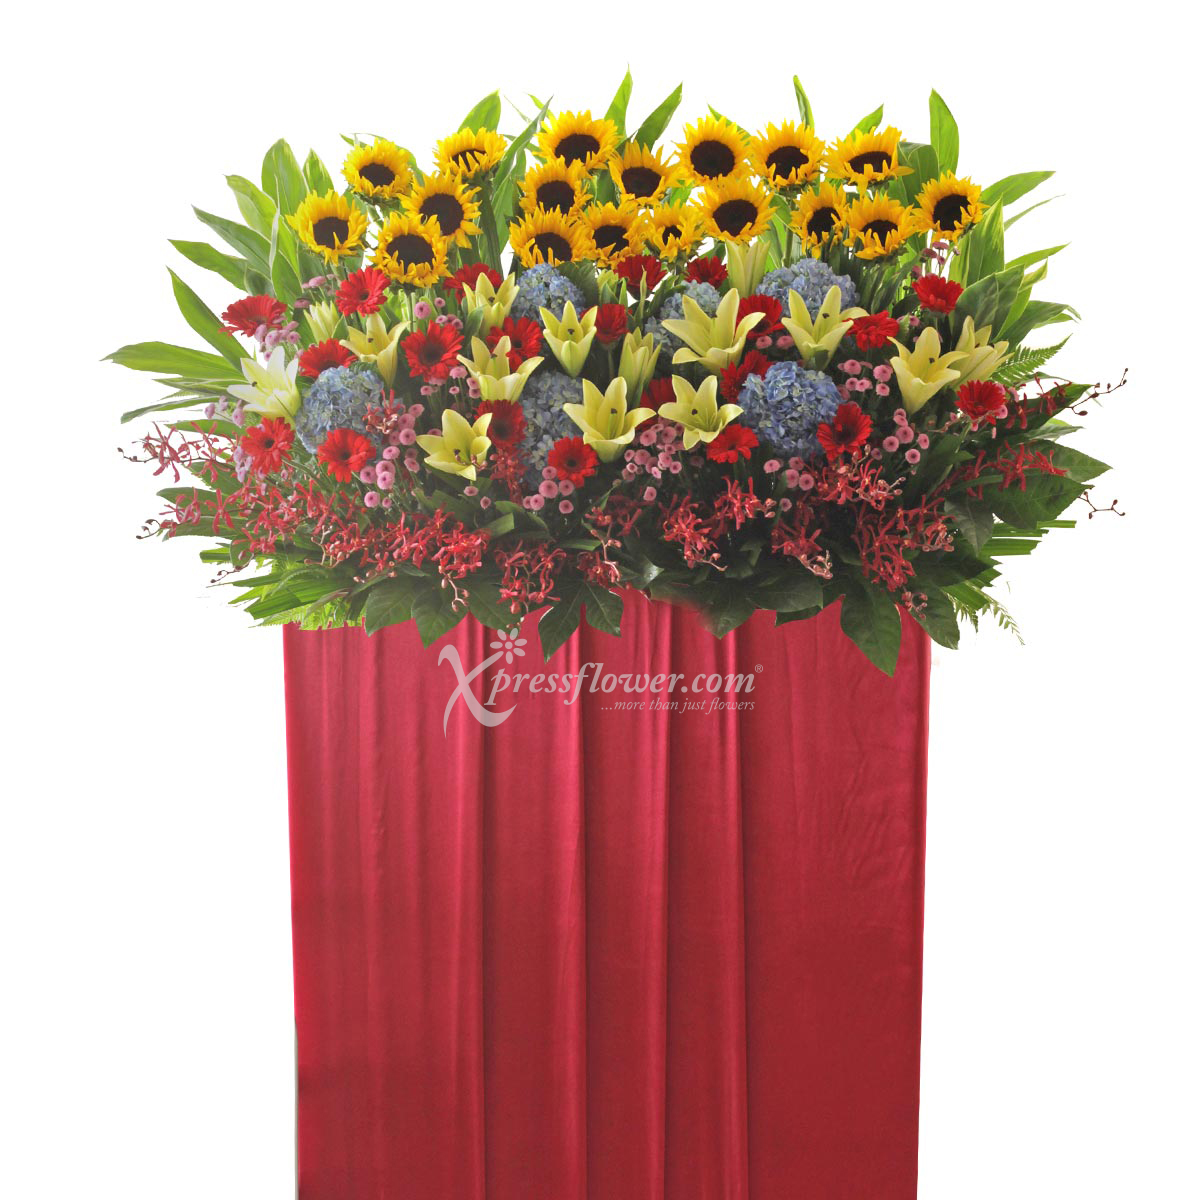 CS1714 Phenomenal Success congratulatory flower opening stand